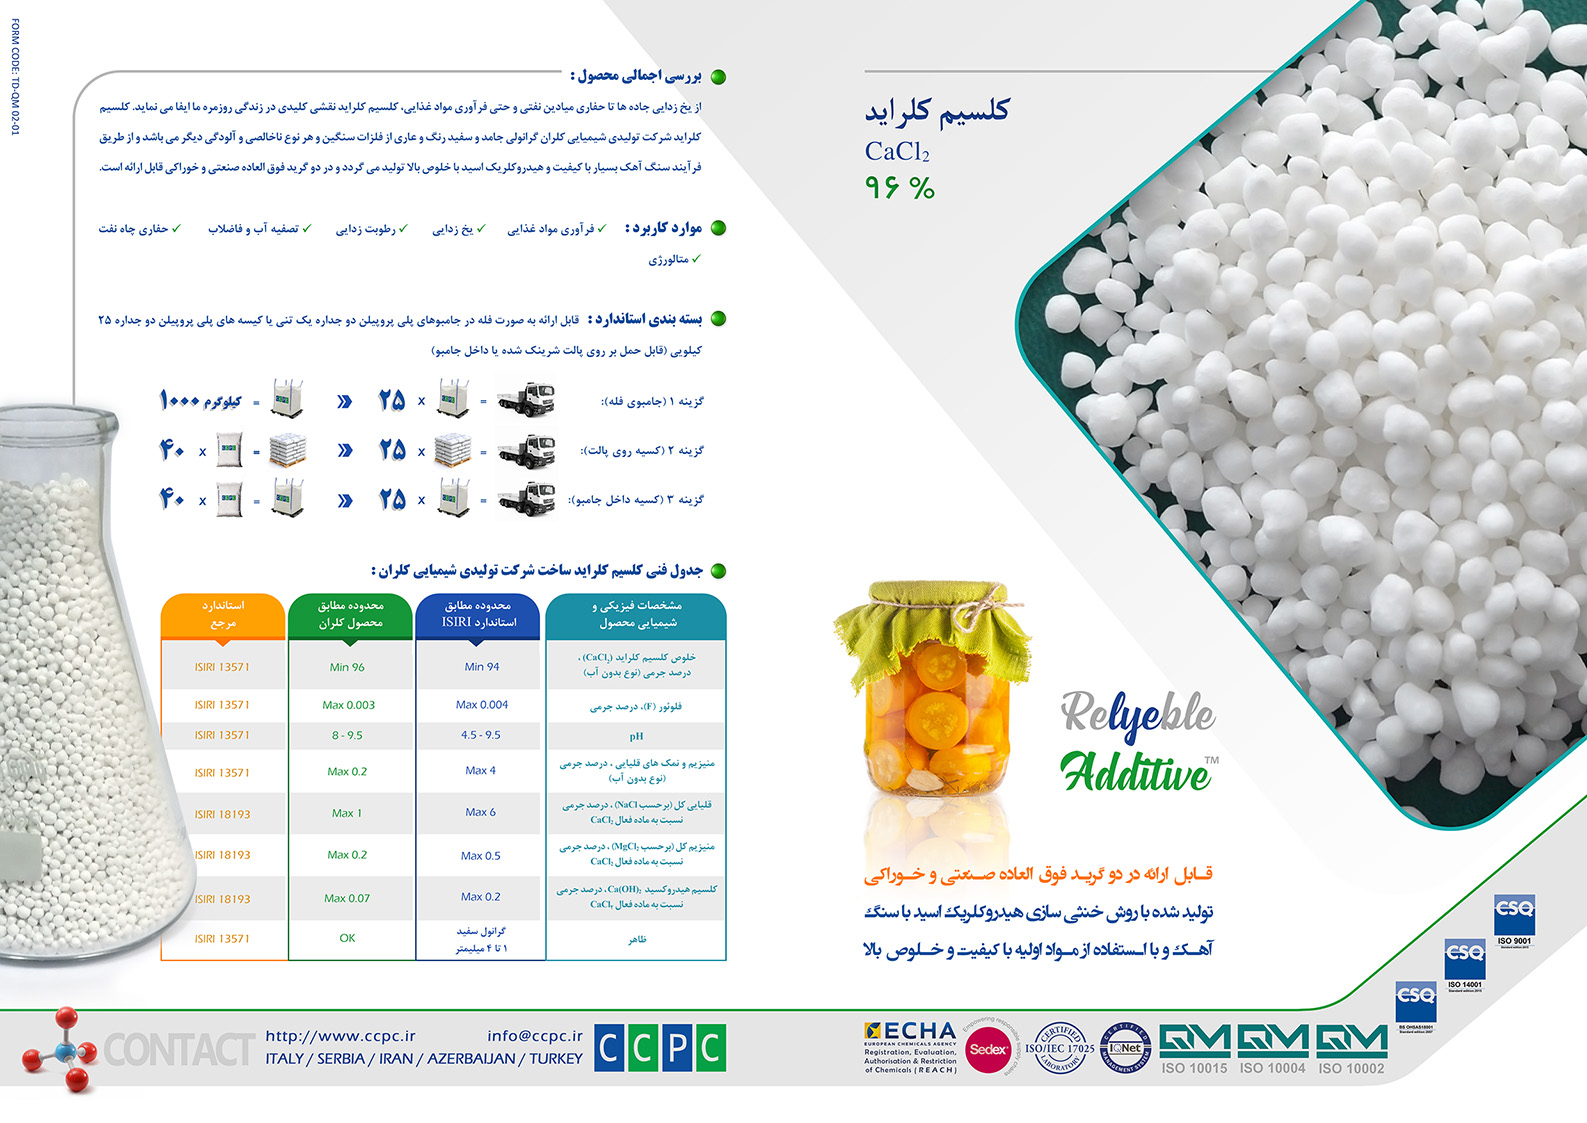 11 Calcium Chloride Pages FA